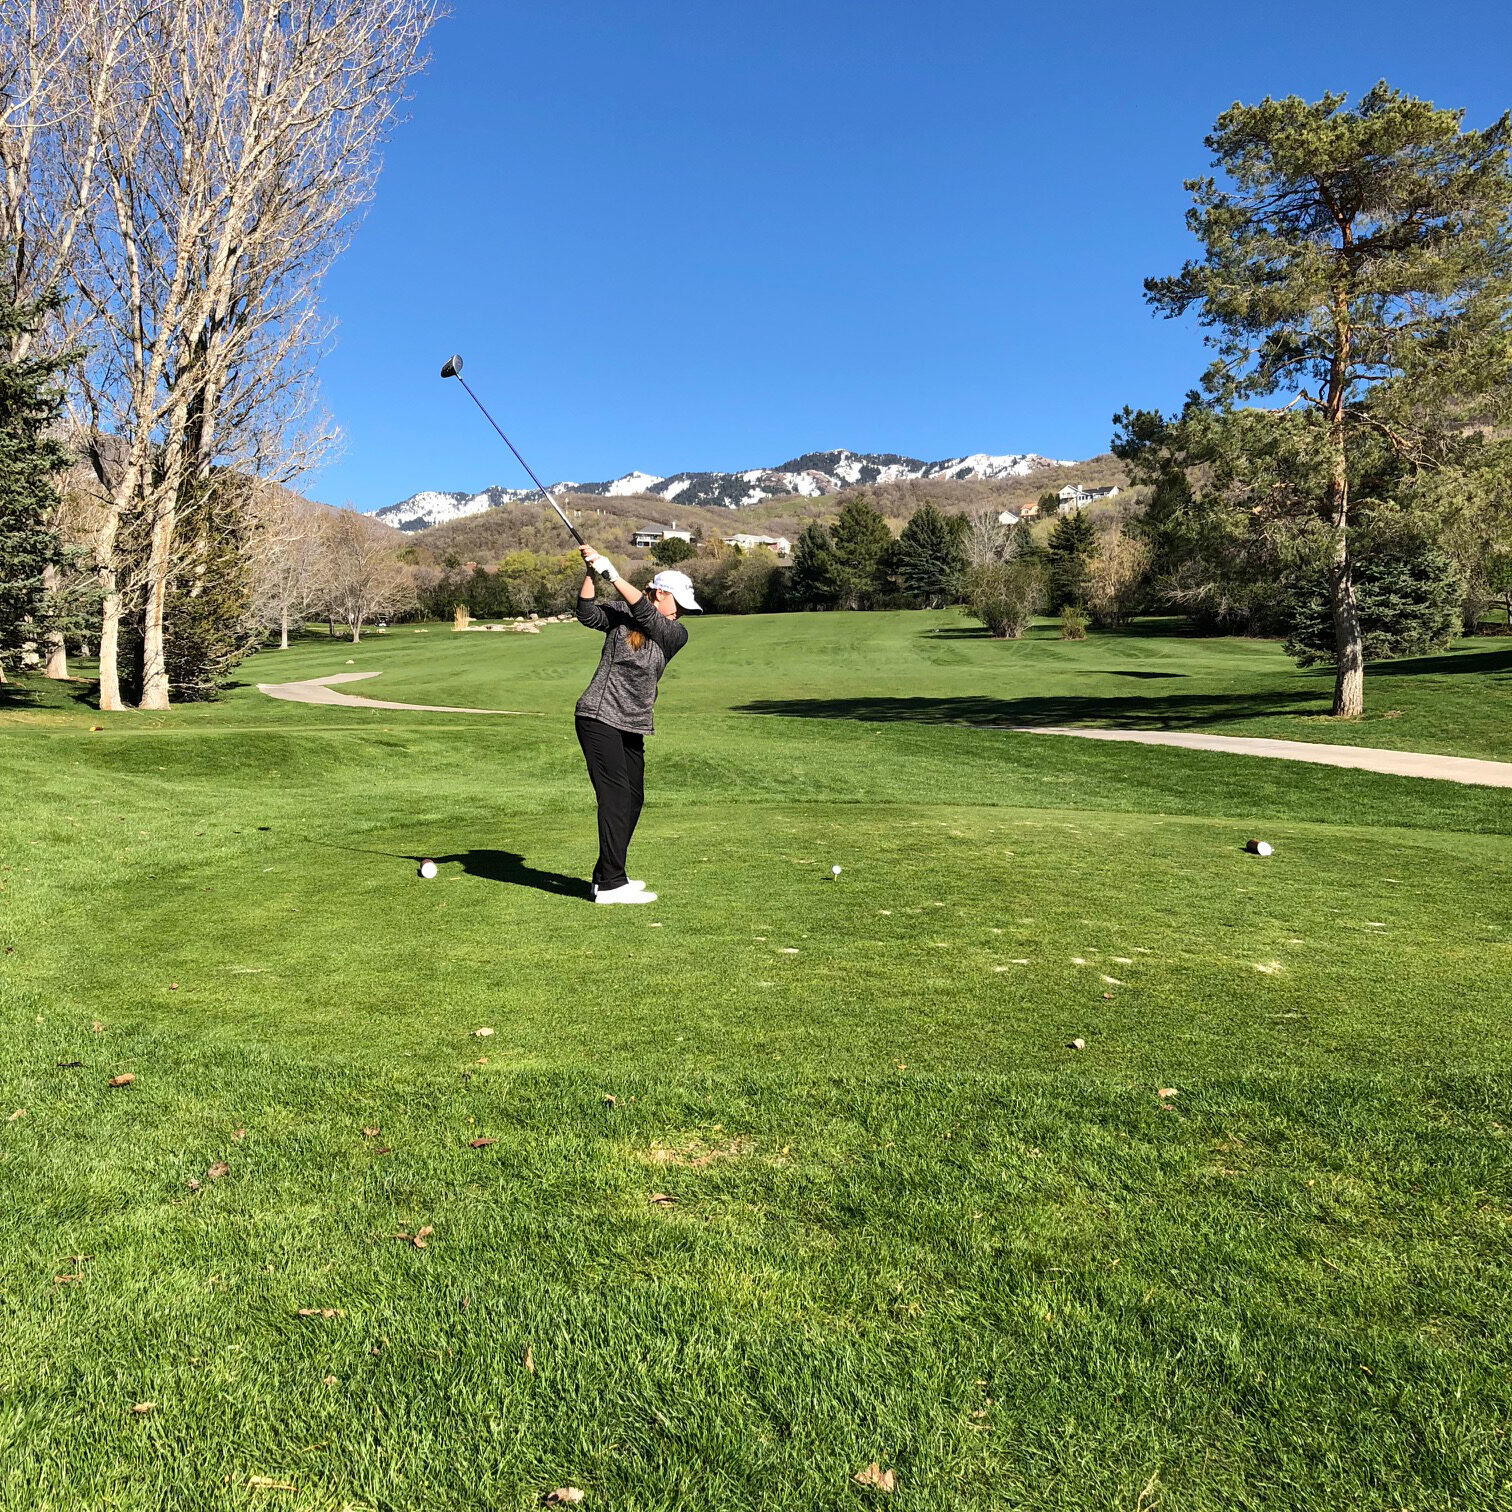 Played this beautiful course in Bountiful, UT Spring 2018